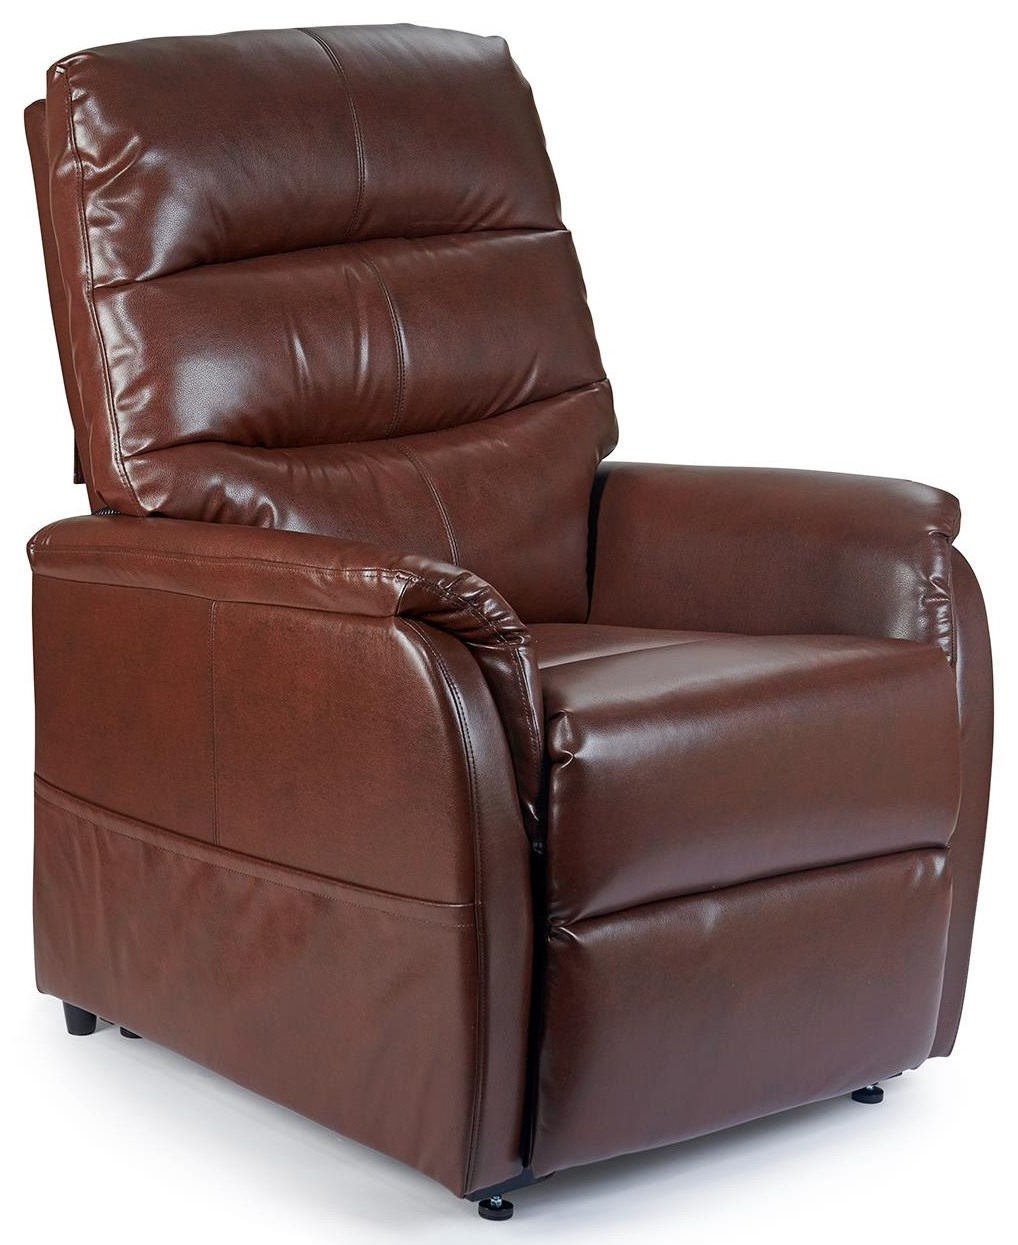 Leisure Tufted Plush Lift Chair by UltraComfort at Crowley Furniture & Mattress